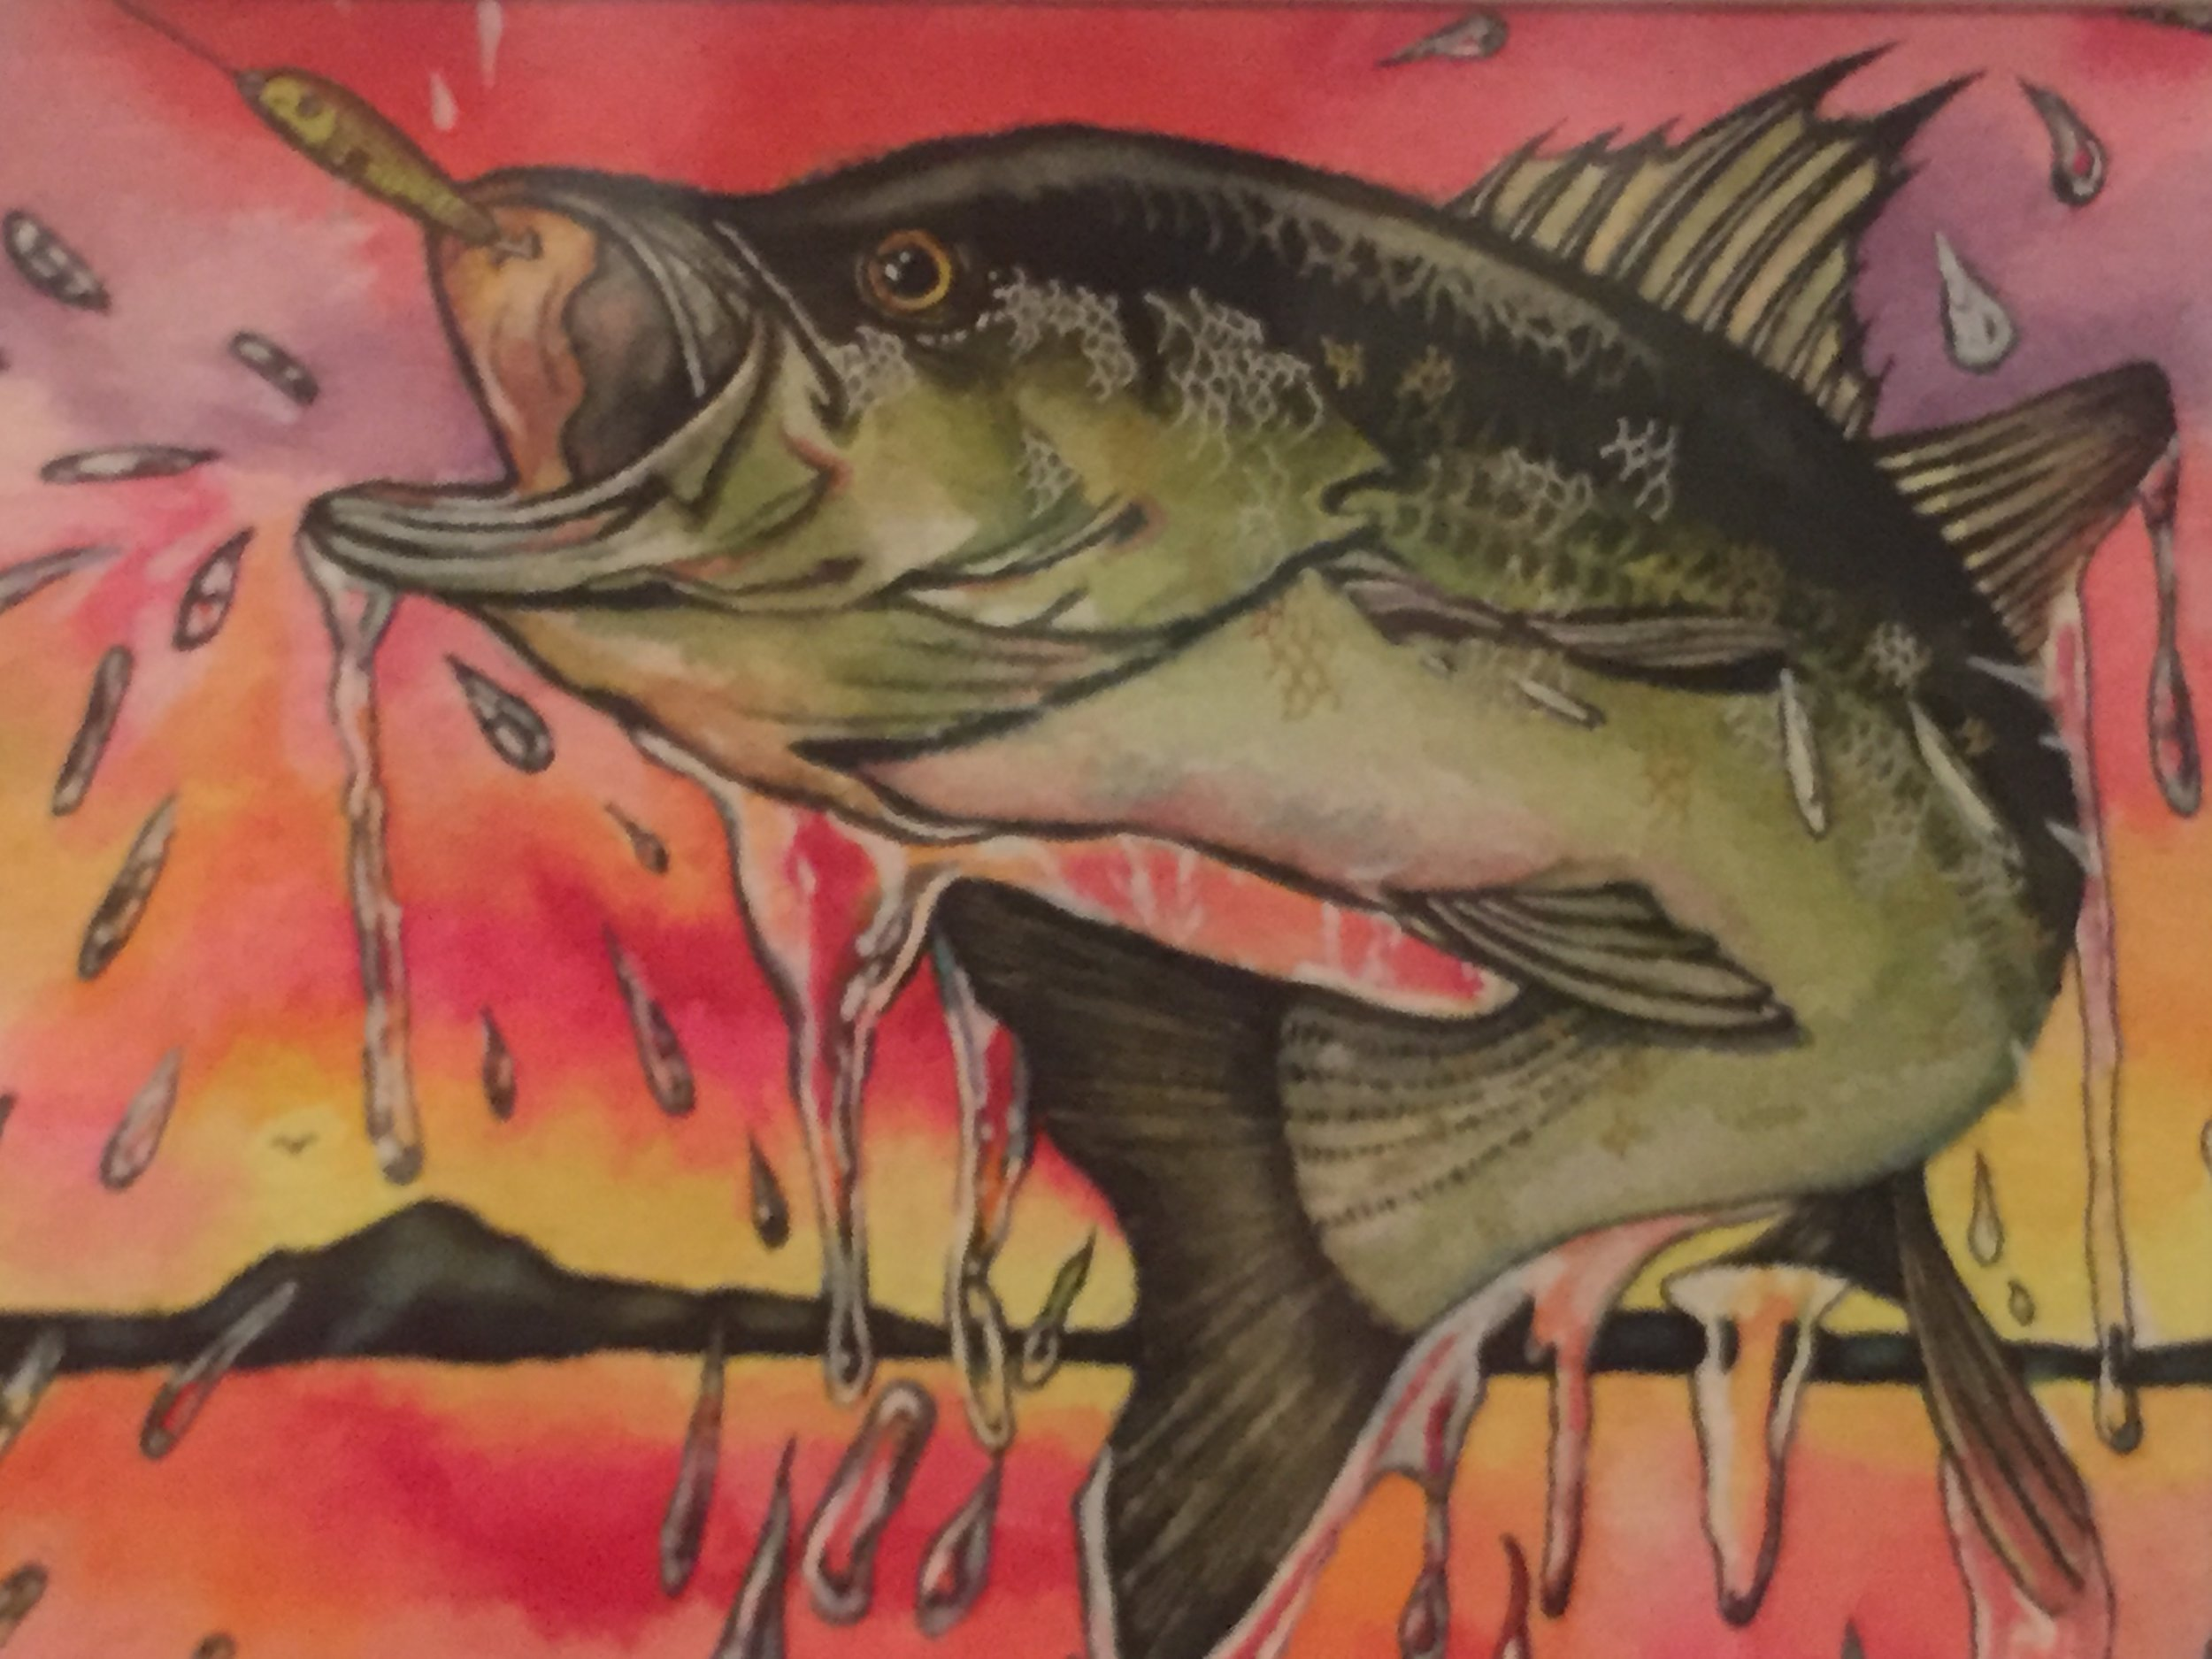 Bass Jumping Out of Water,  Gel Pens and Colored Pencils on Watercolor